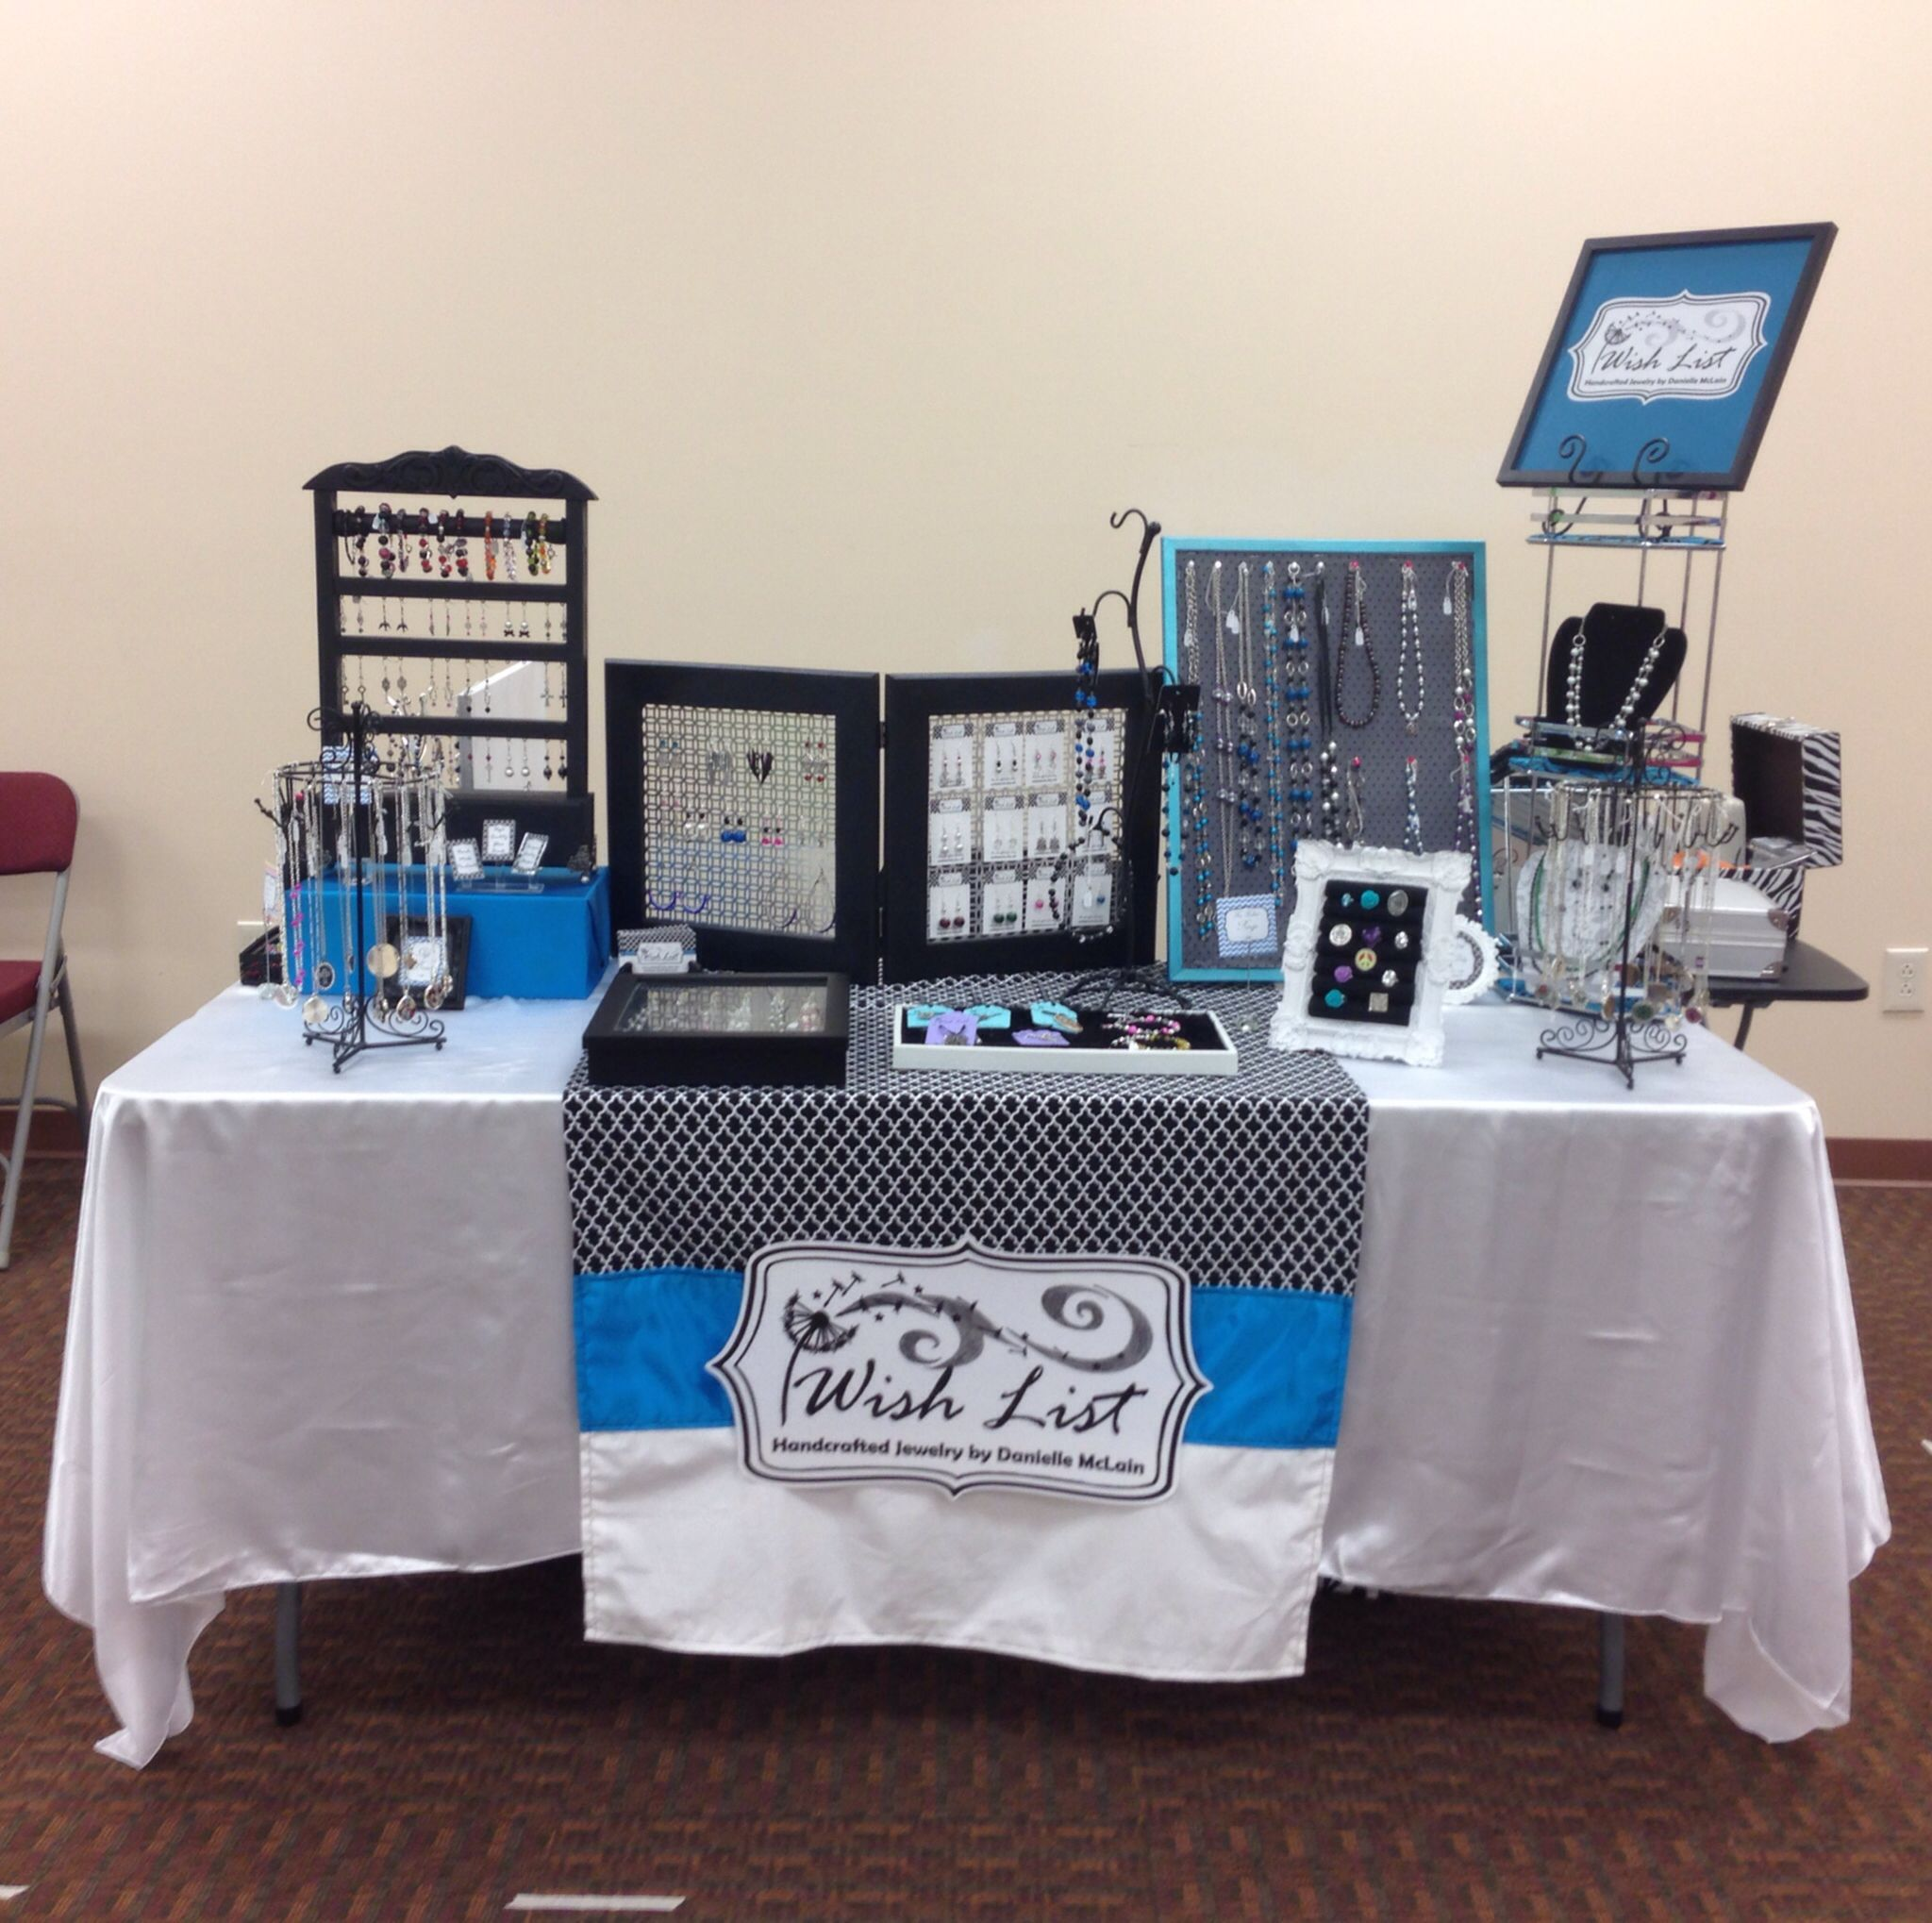 My Handmade Jewelry Booth Display; Craft Show Table